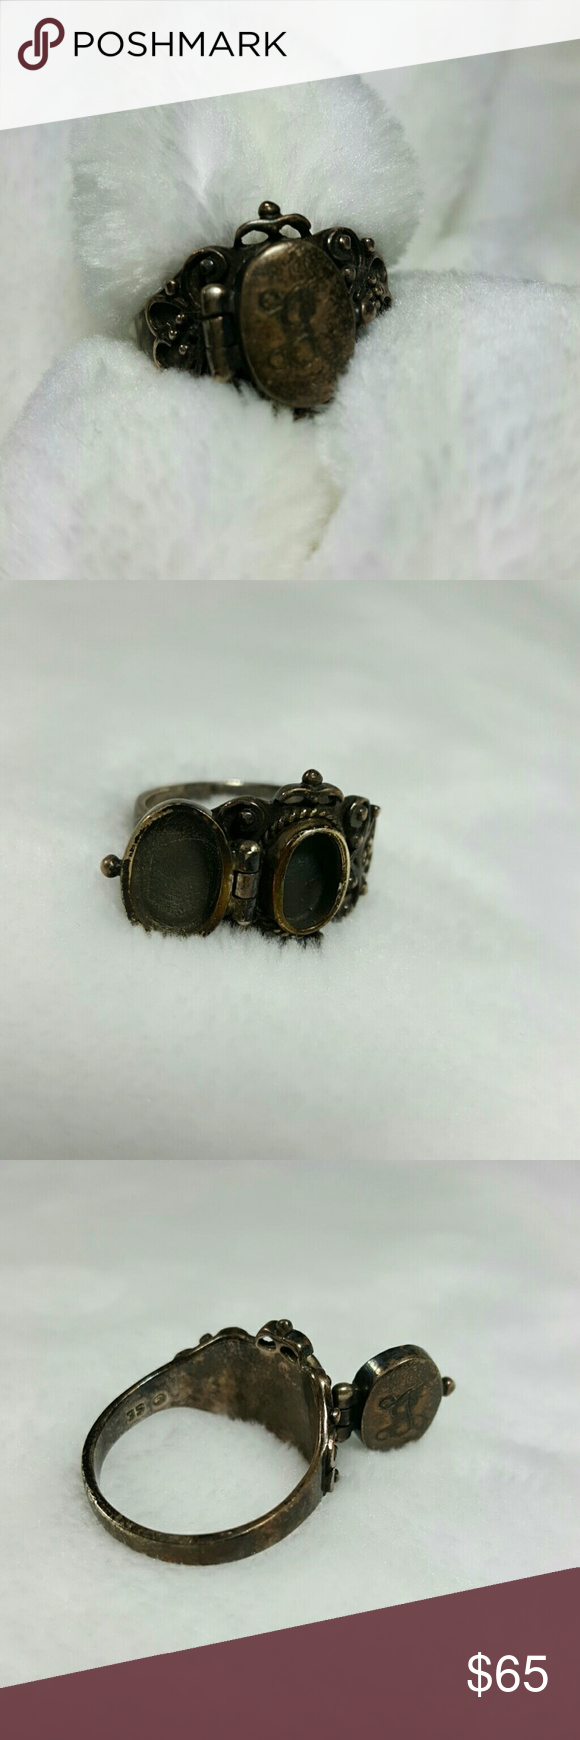 Vintage Poison Sterling Silver Ring Silver Poison Ring Oval  Filigree Romantic Pillbox Hinged Locket Compartment  Vintage Sterling Silver 925 Sturdy Ring Opens and Closes  J Engraved Jewelry Rings